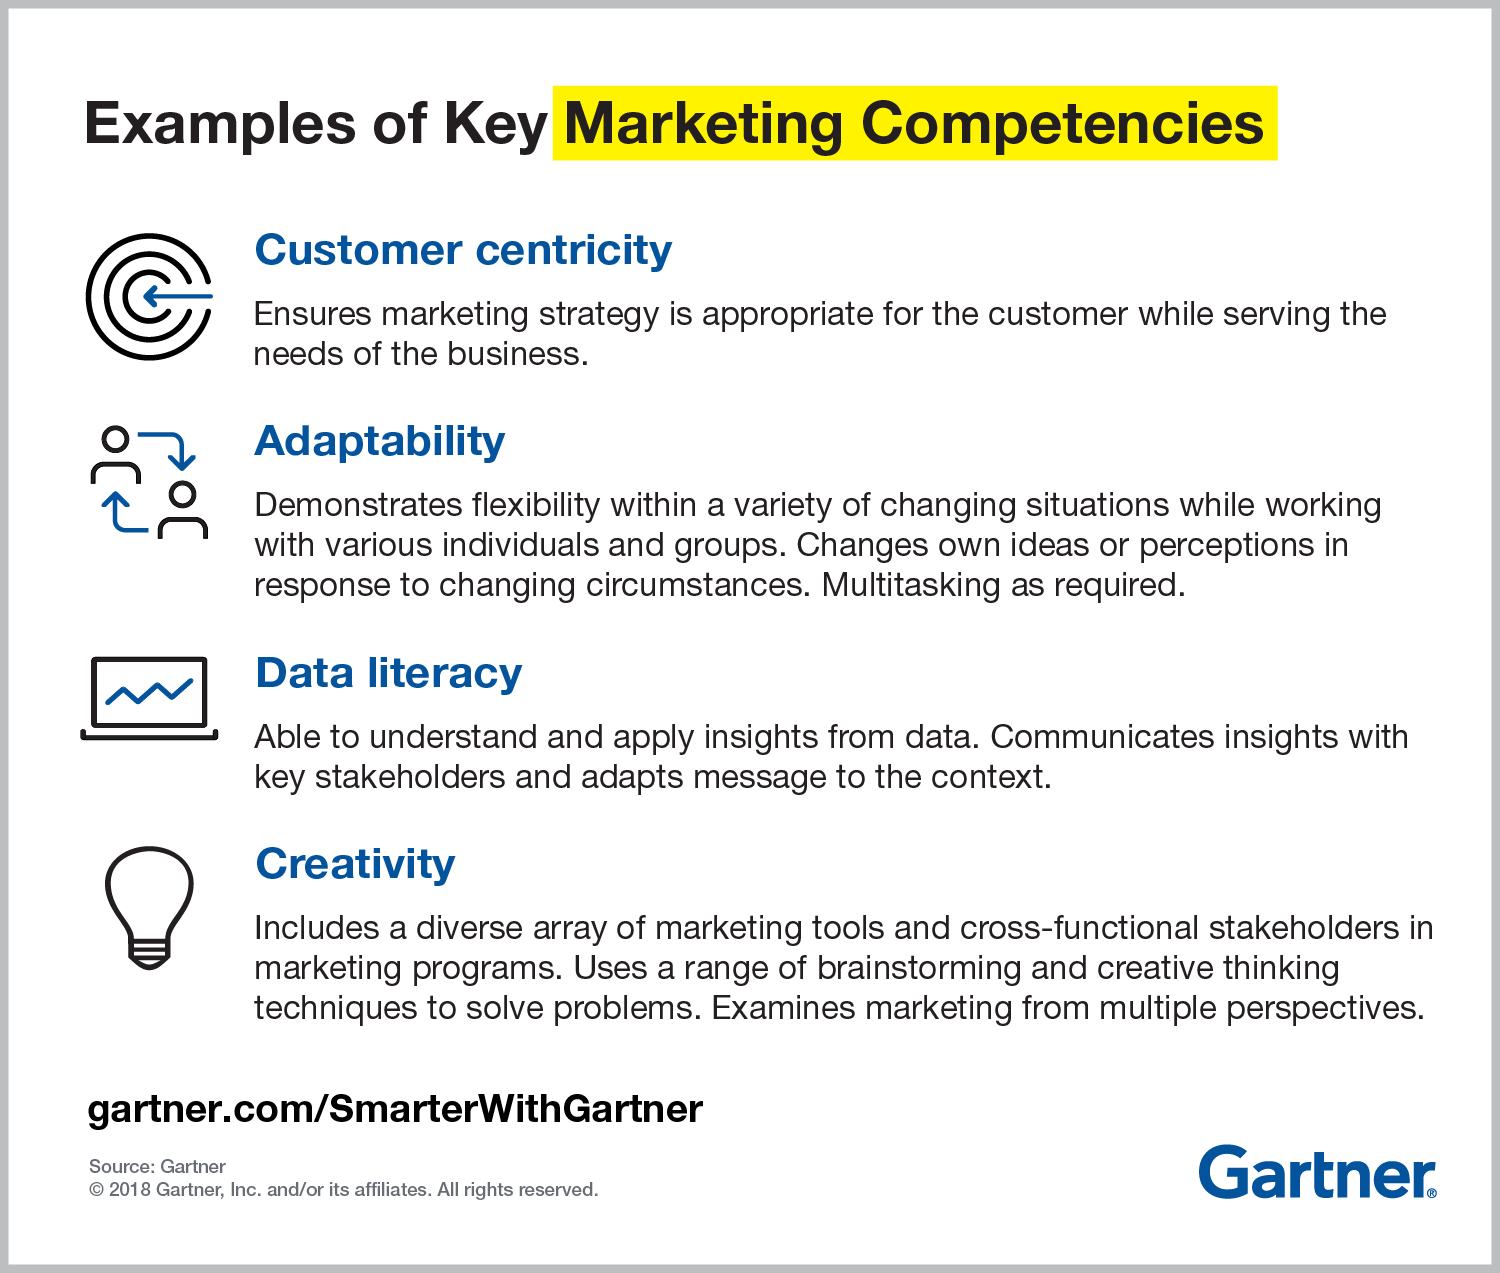 Examples of key marketing competencies: Customer centricity, adaptability, data literacy and creativity.